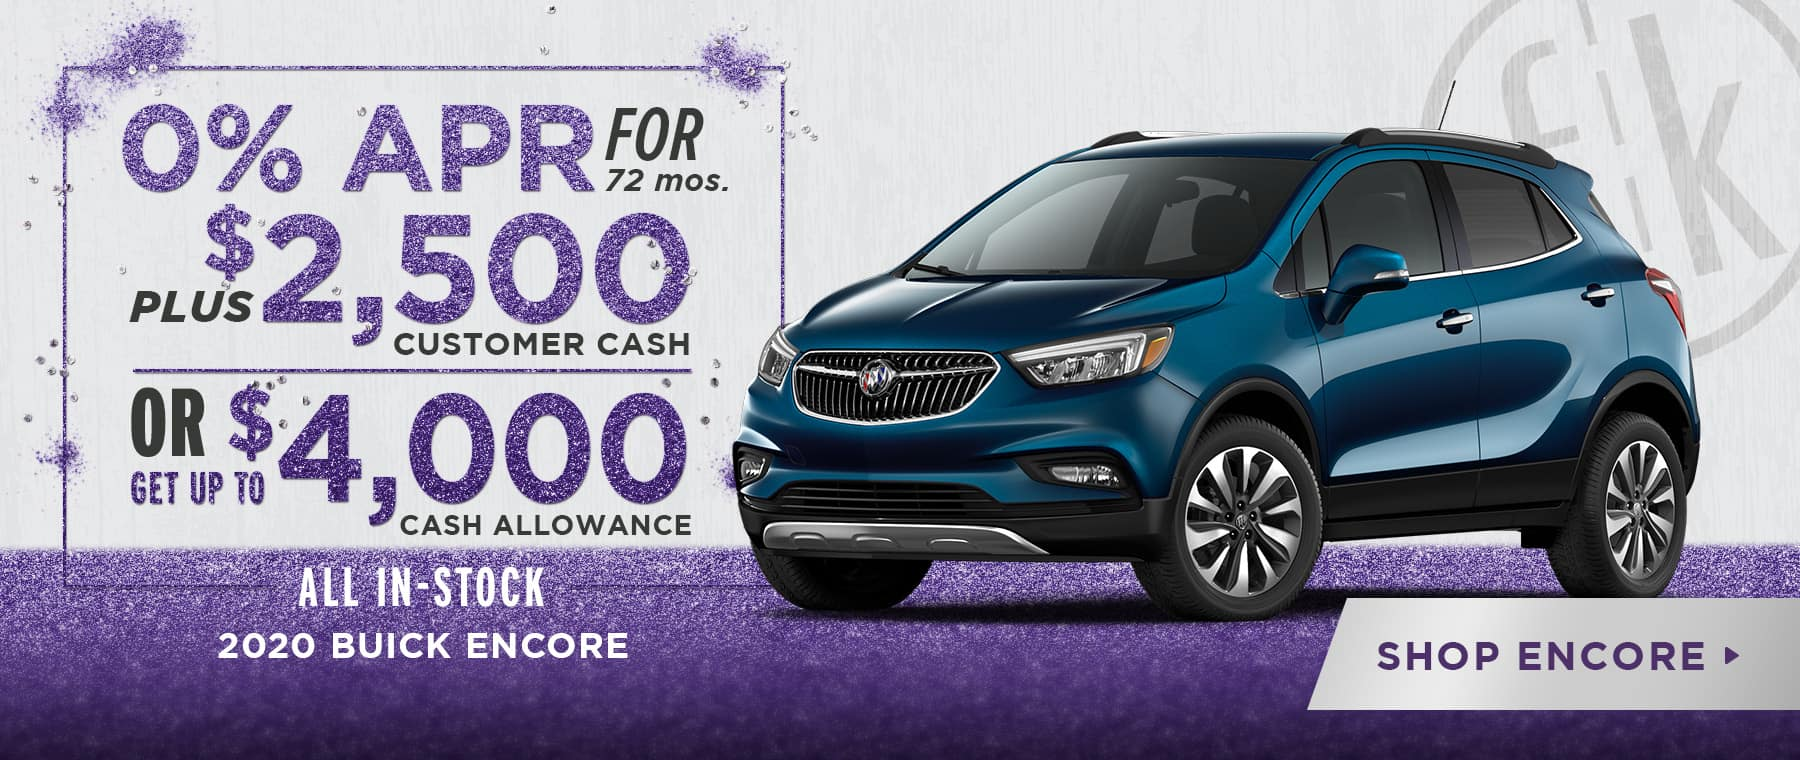 0% for 72 mos. PLUS $2,500 Customer Cash OR Get Up To $4,000 Cash Allowance 2020 Encore